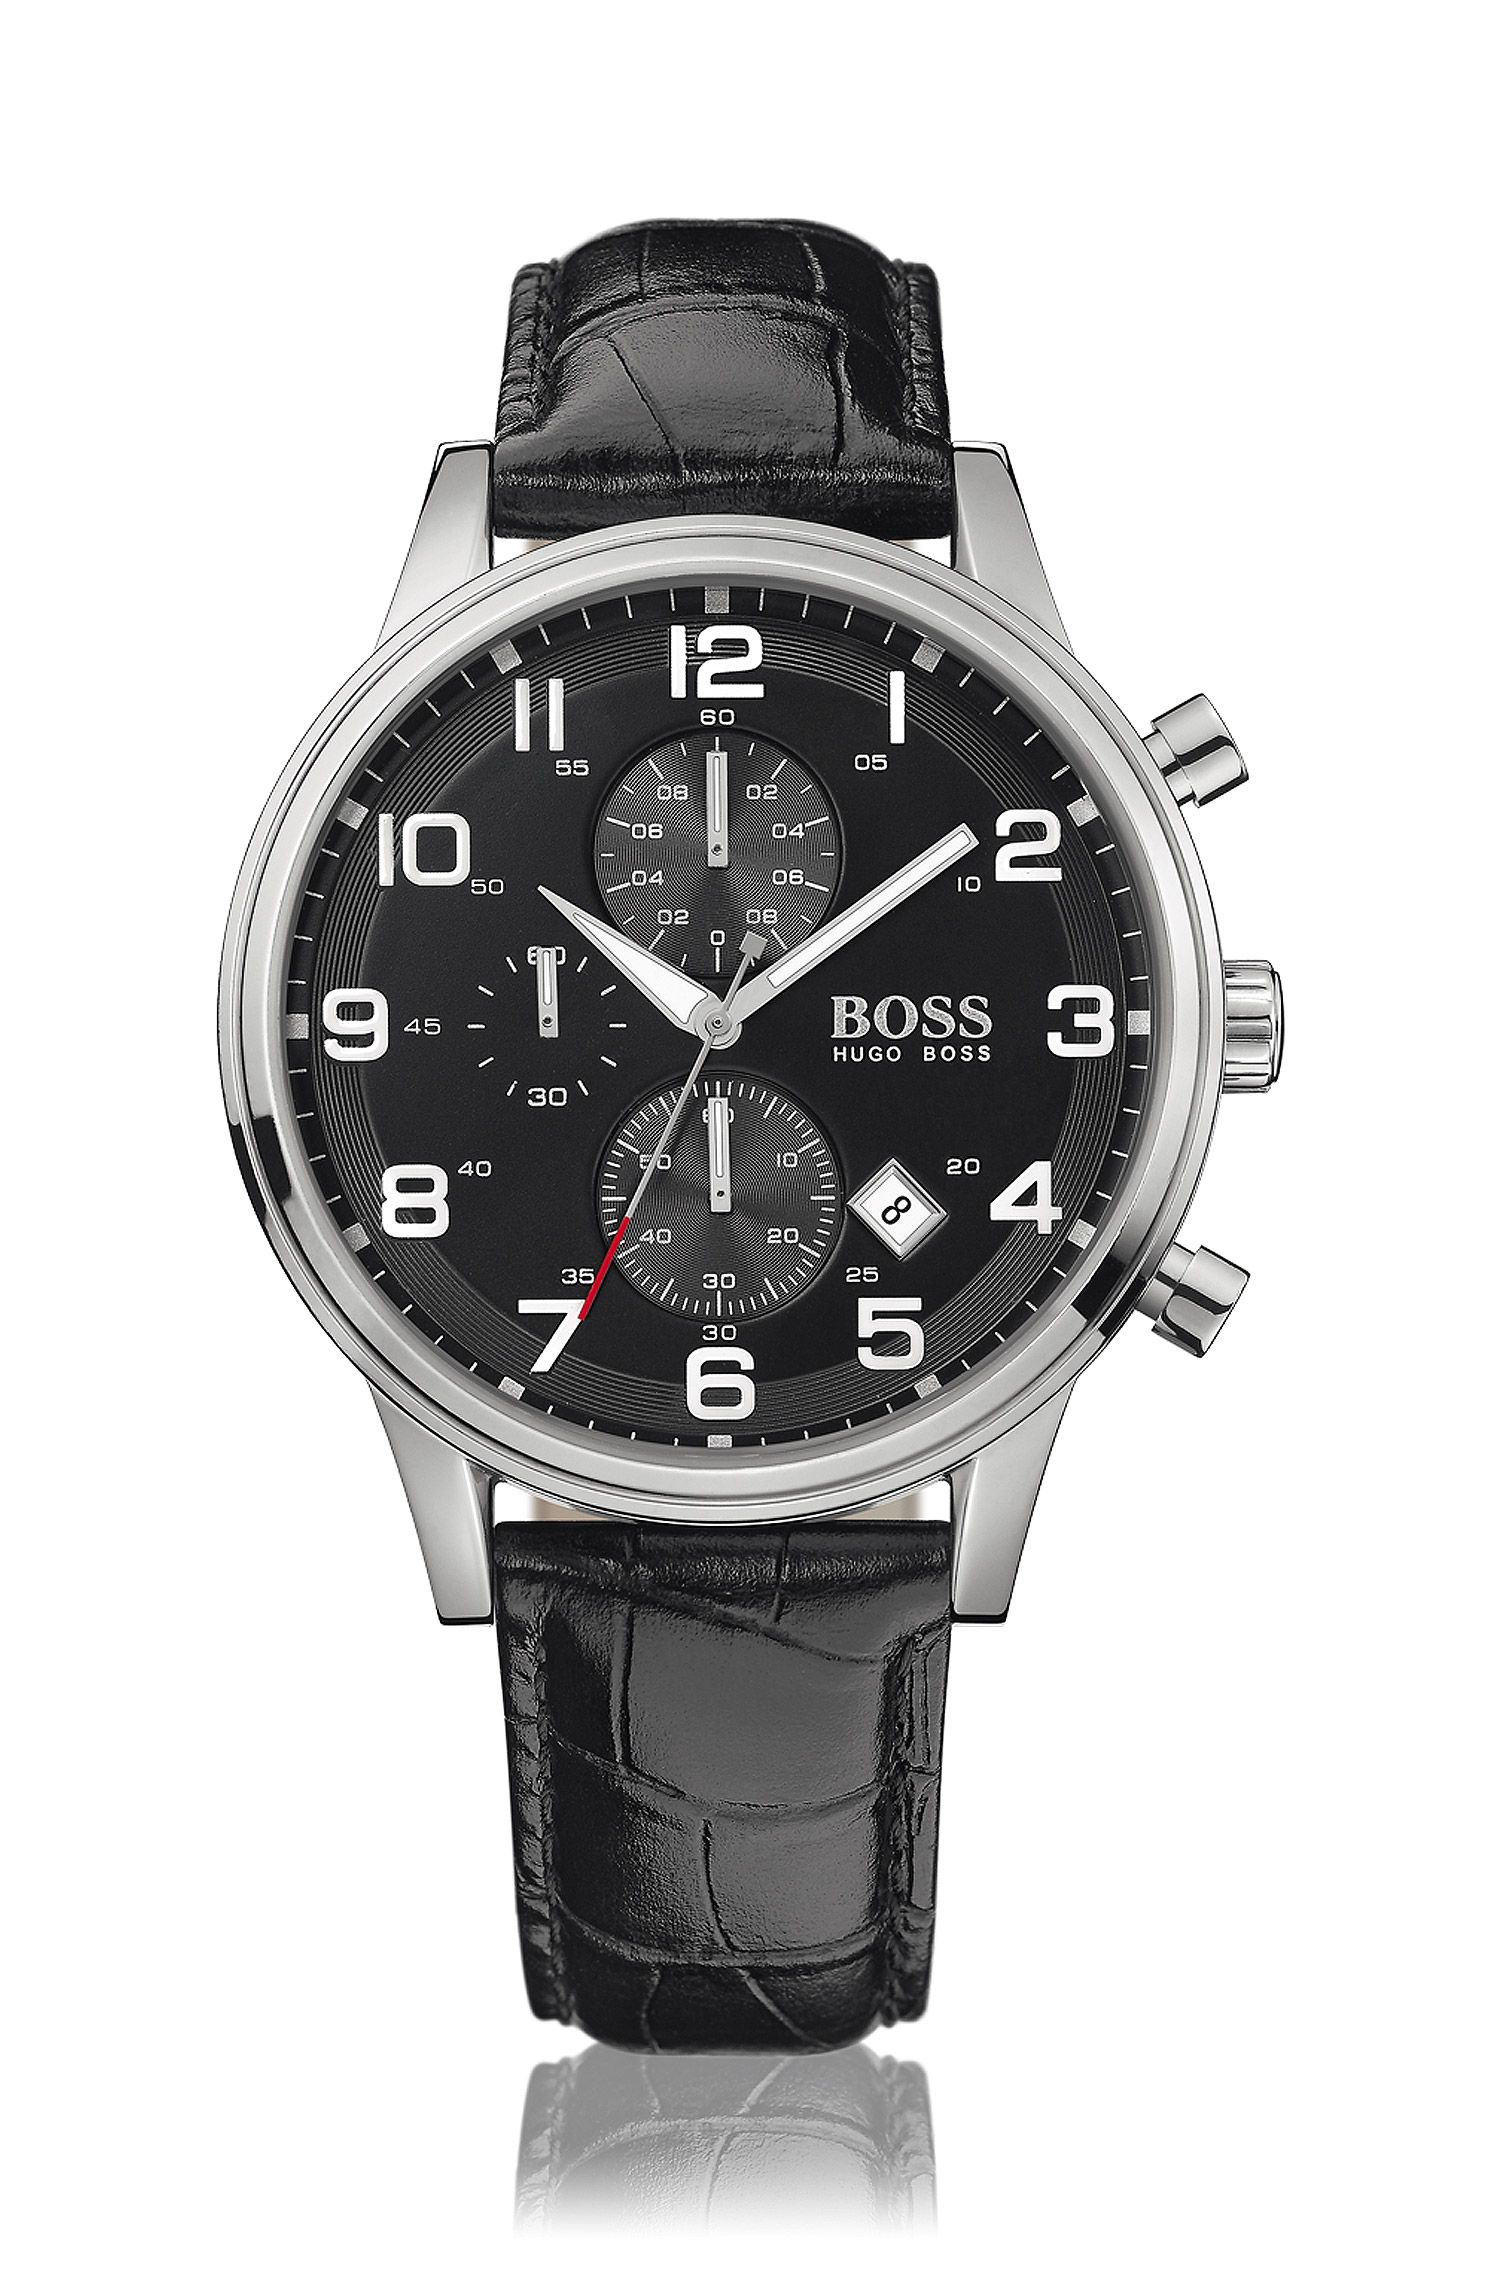 Stainless-steel two-eye flyback chronograph watch with black dial